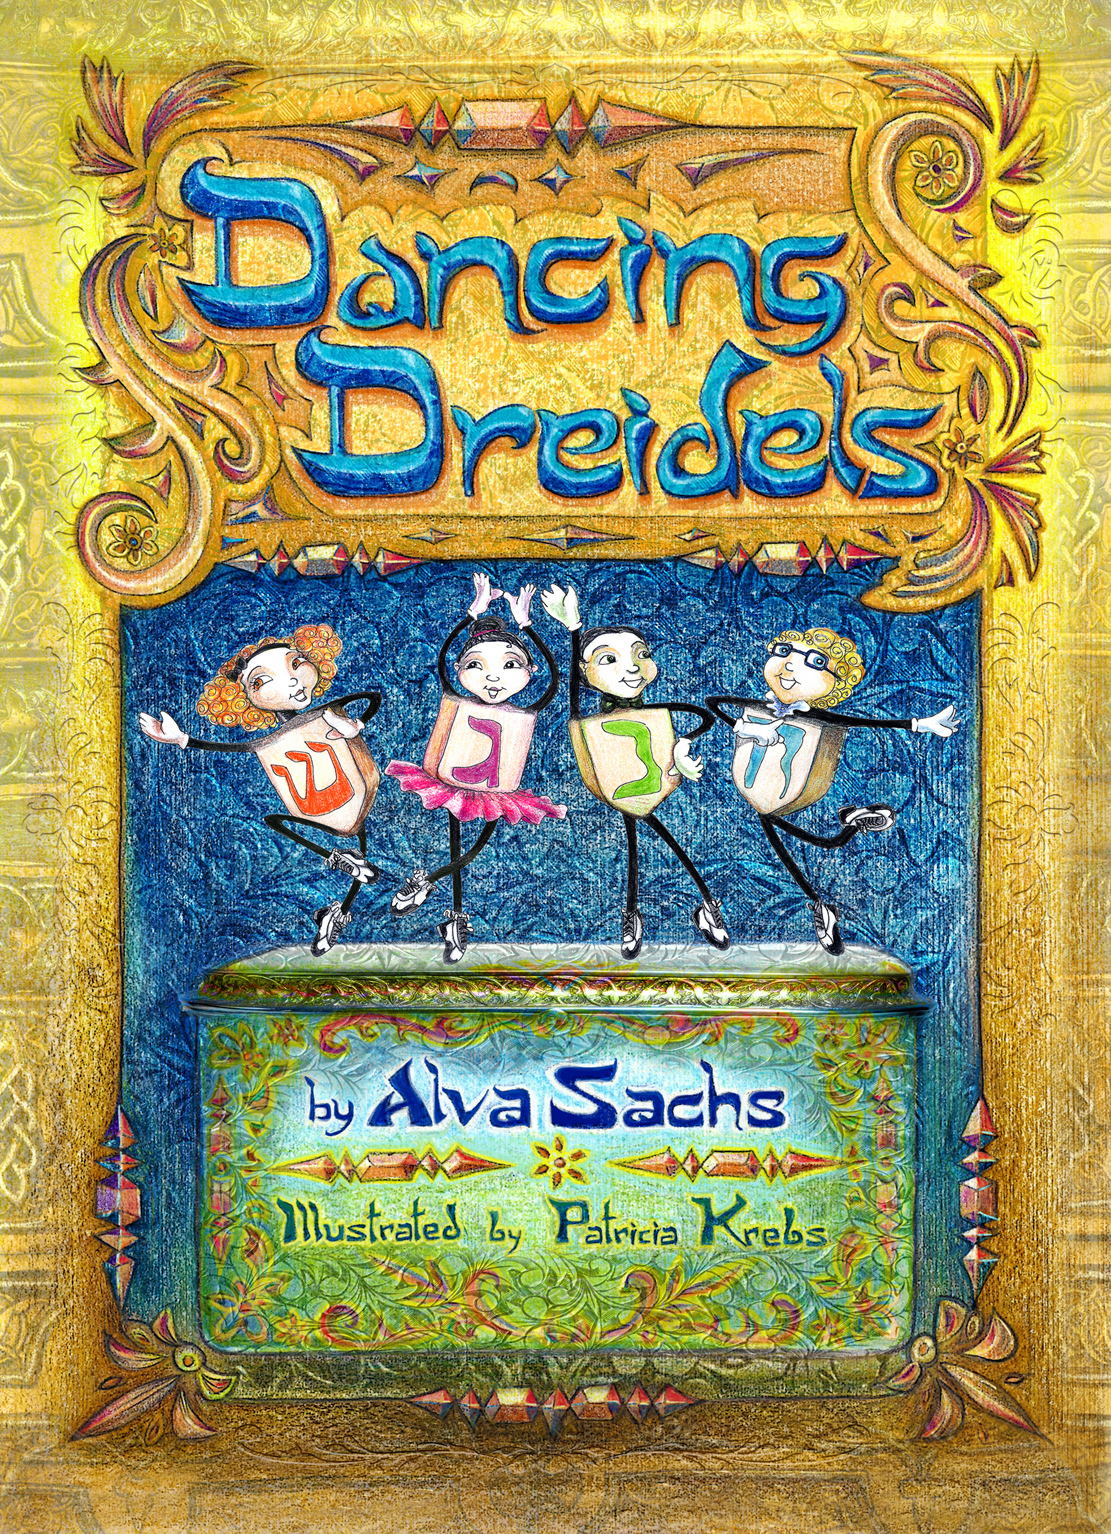 Cover of Dancing Dreidels written by Alva Sachs and illustrated by Patricia Krebs